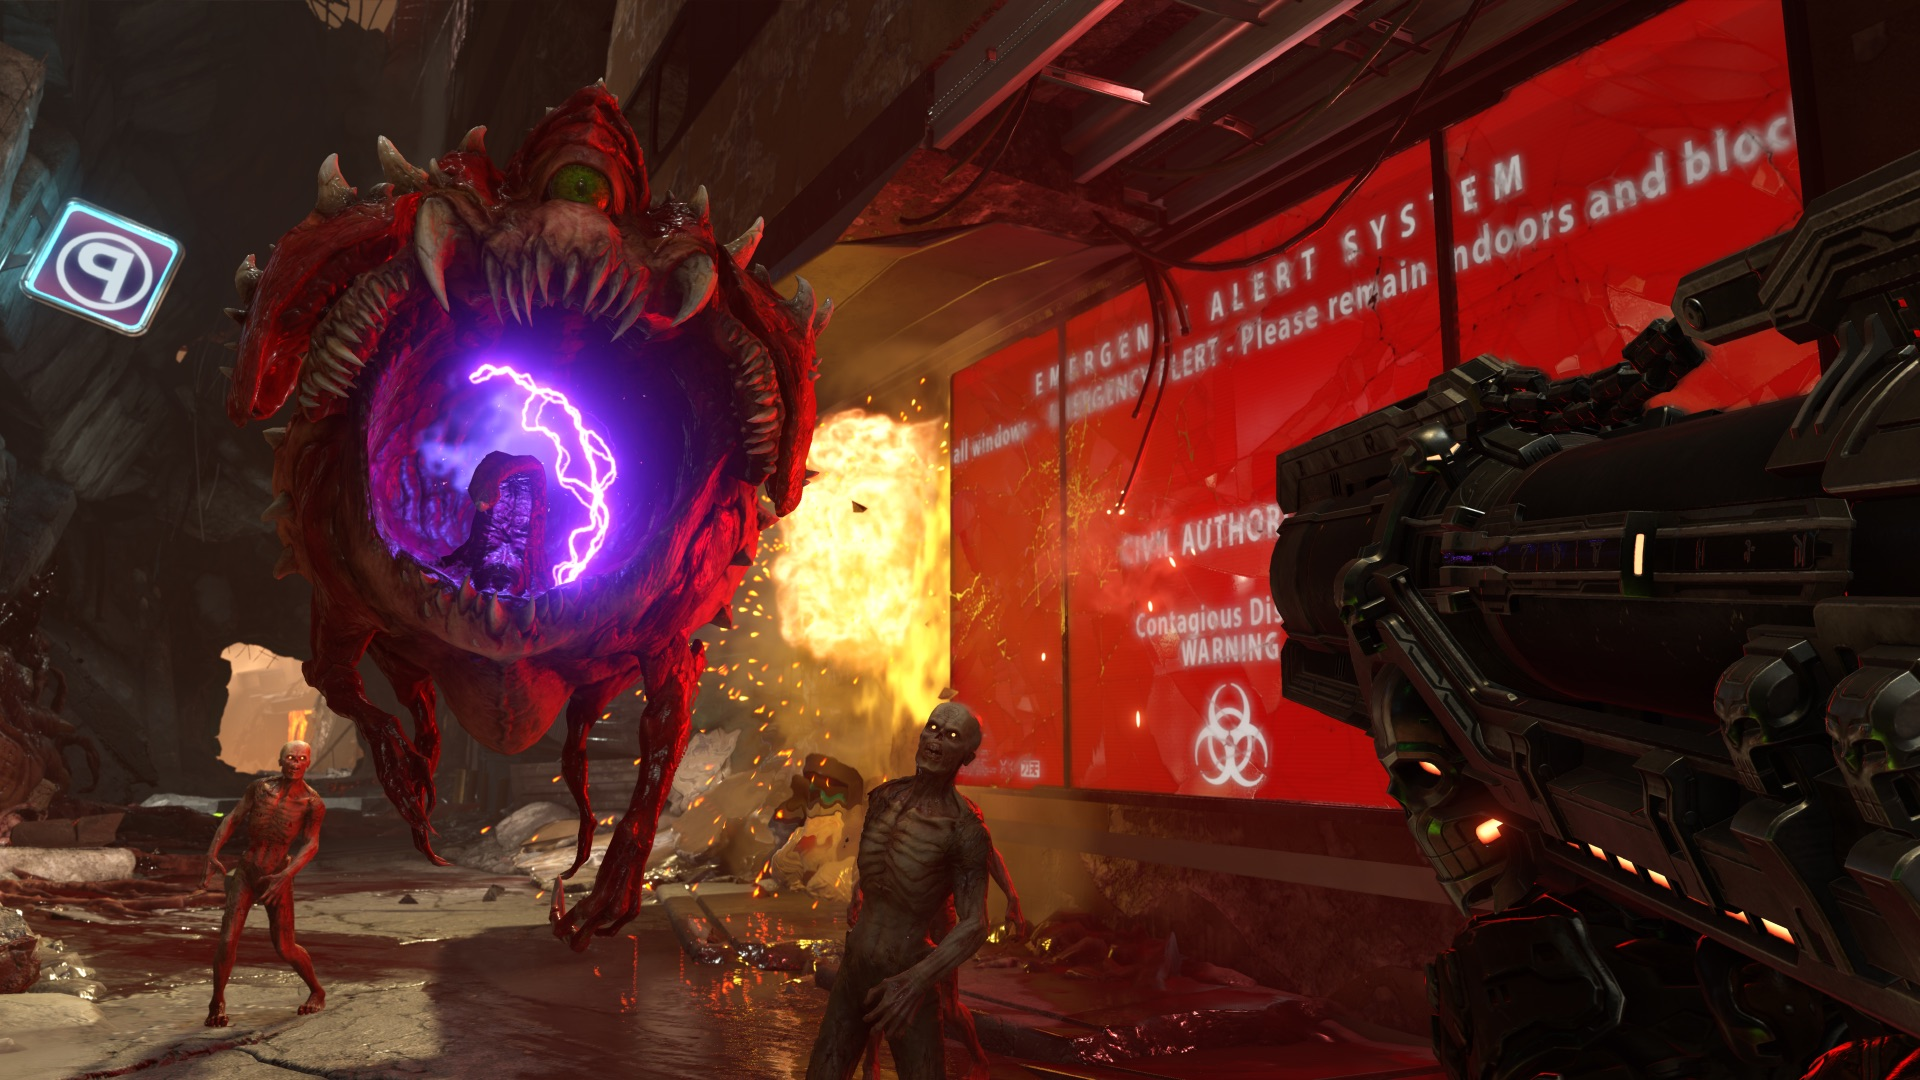 Media asset in full size related to 3dfxzone.it news item entitled as follows: Bethesda presenta il game DOOM Eternal con gameplay trailer e screenshots | Image Name: news28544_DOOM-Eternal-Screenshot_2.jpg